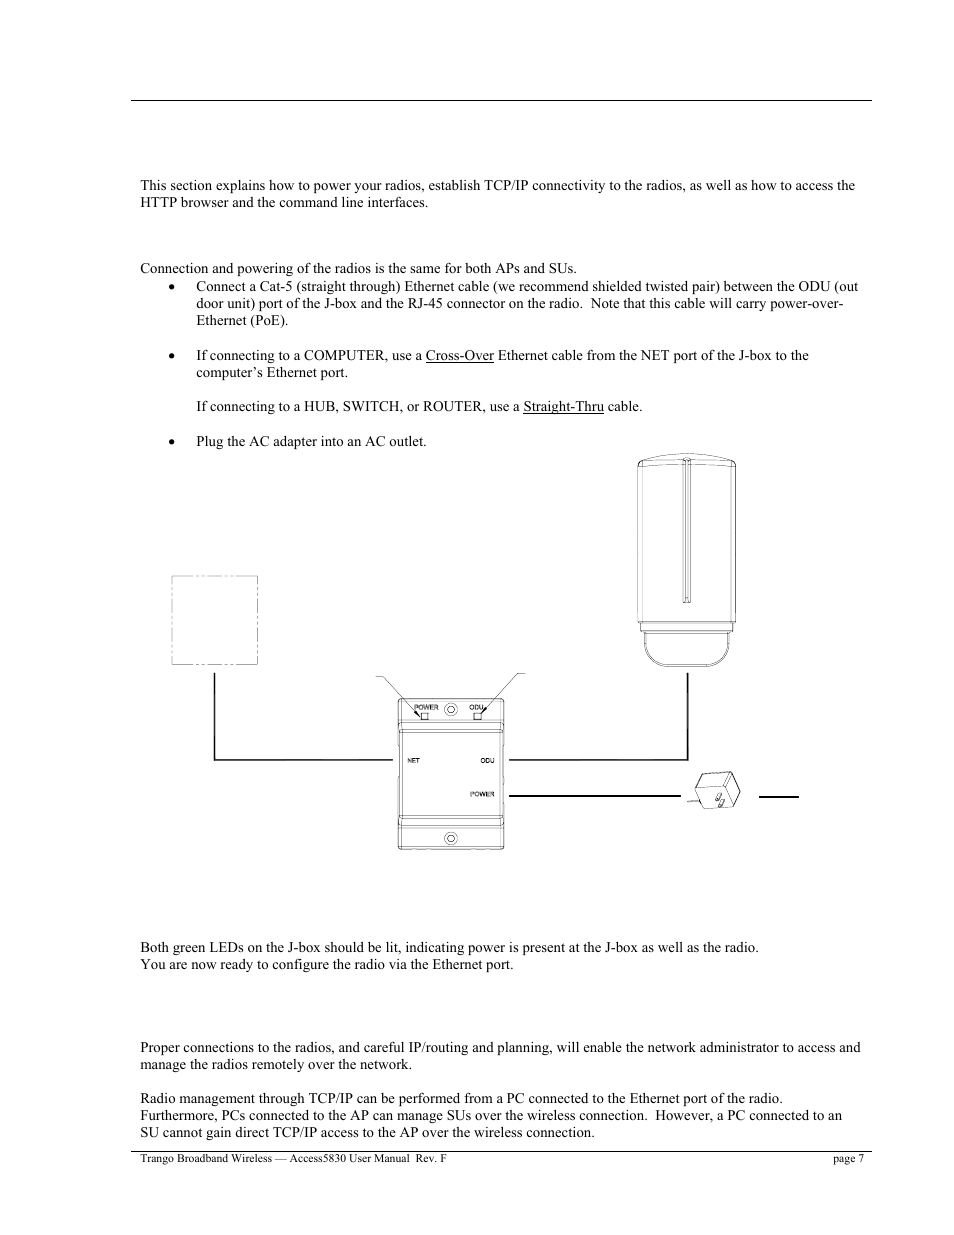 Connections And Power Opmode Radio Management Concepts Trango Cable For Connecting Computer To A Hub Or Switch Straight Through Broadband Access5830 User Manual Page 11 76